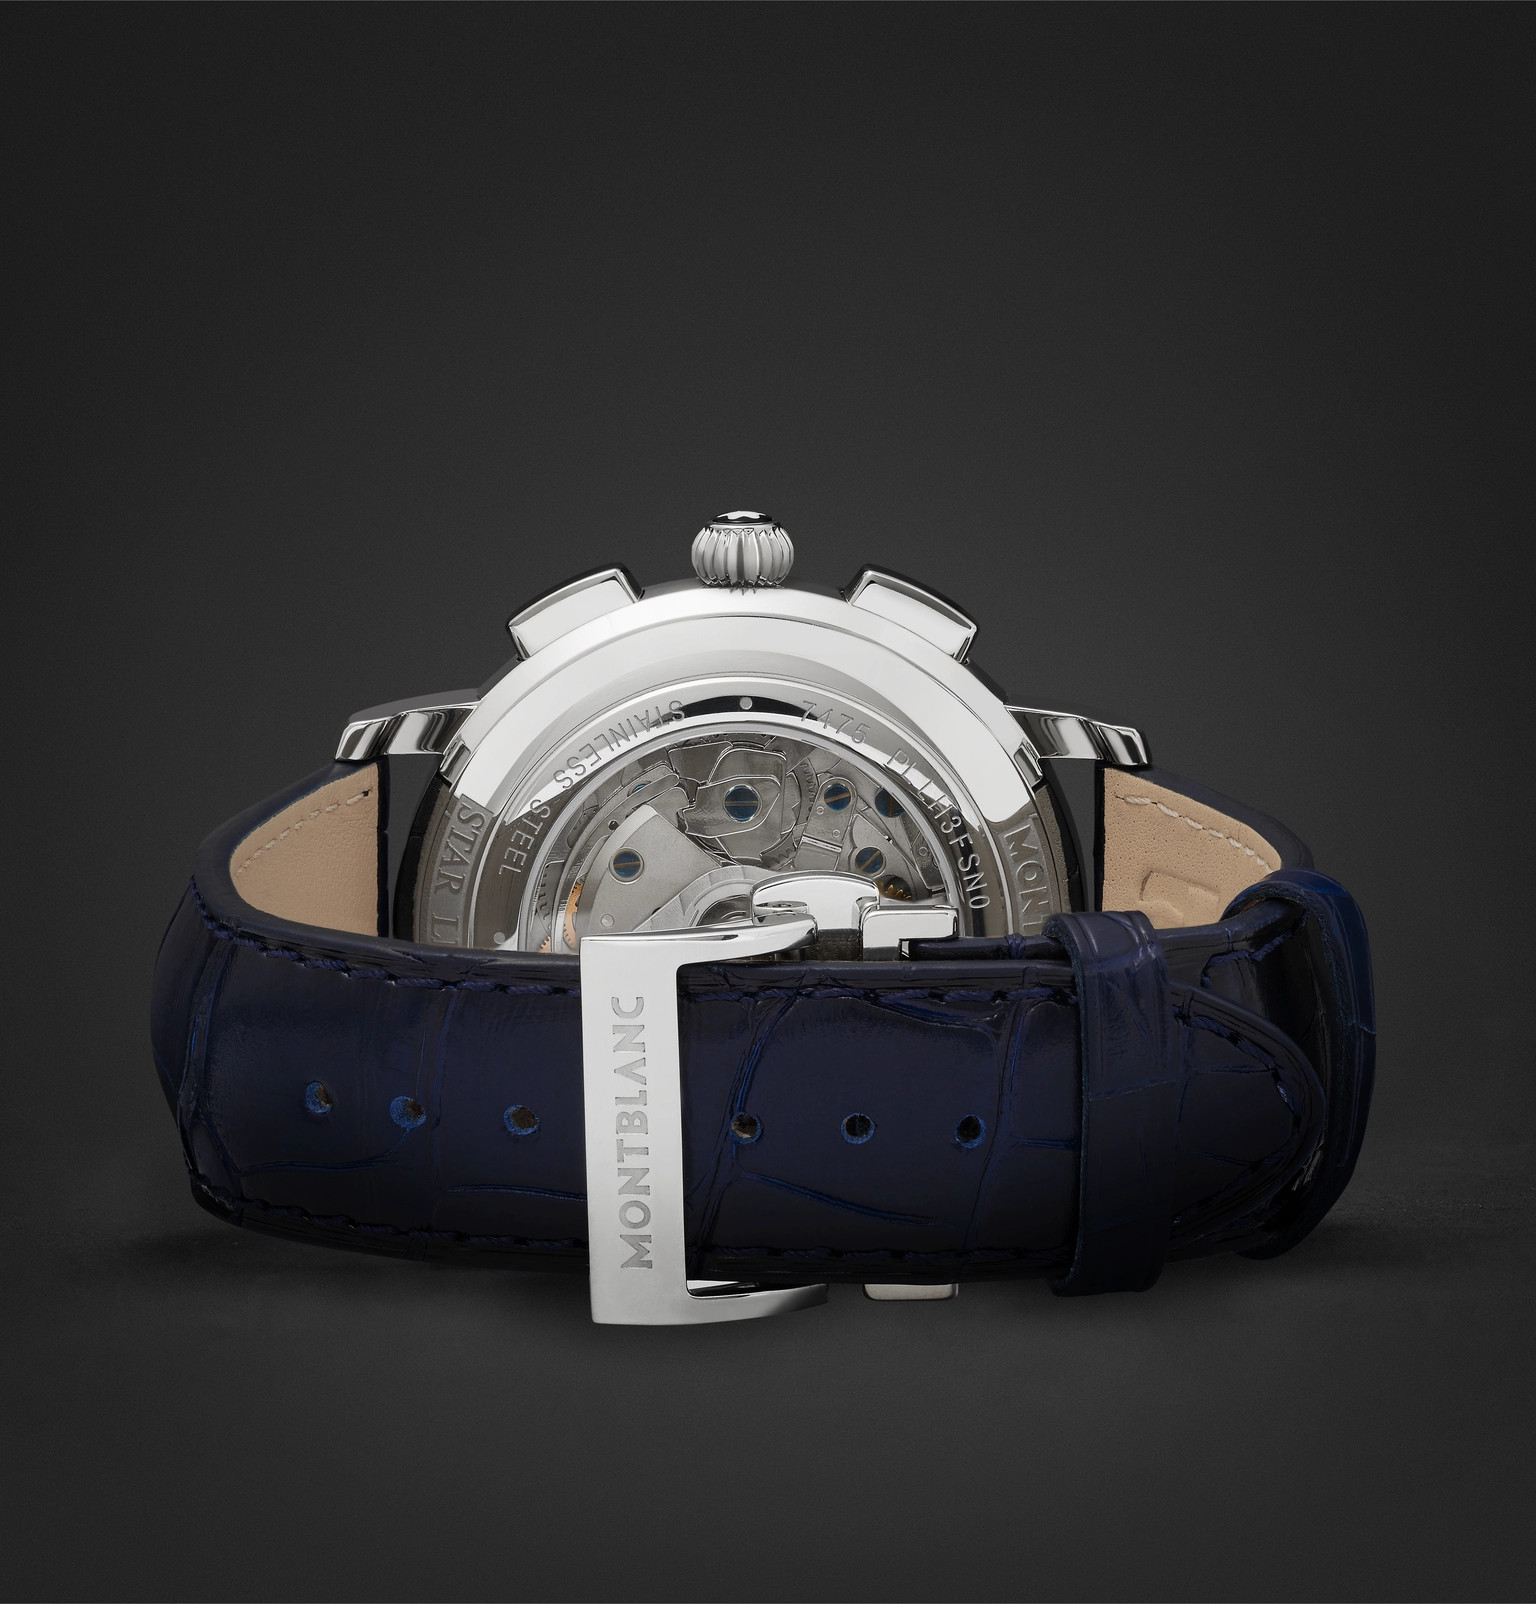 eedf29b1a2c MontblancStar Legacy Automatic Chronograph 42mm Stainless Steel and  Alligator Watch